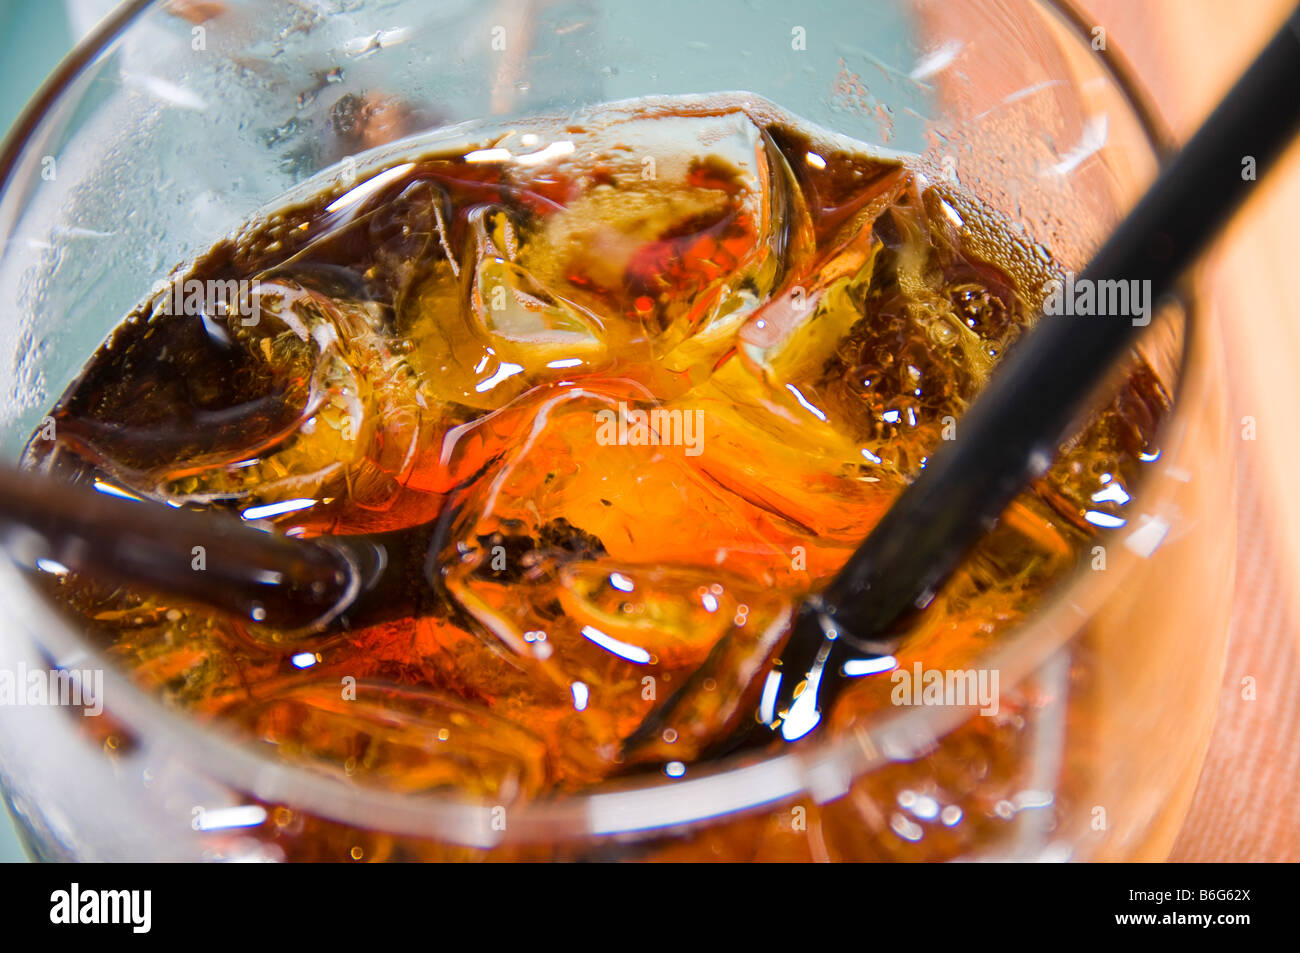 Rum and coke with ice in a glass - Stock Image